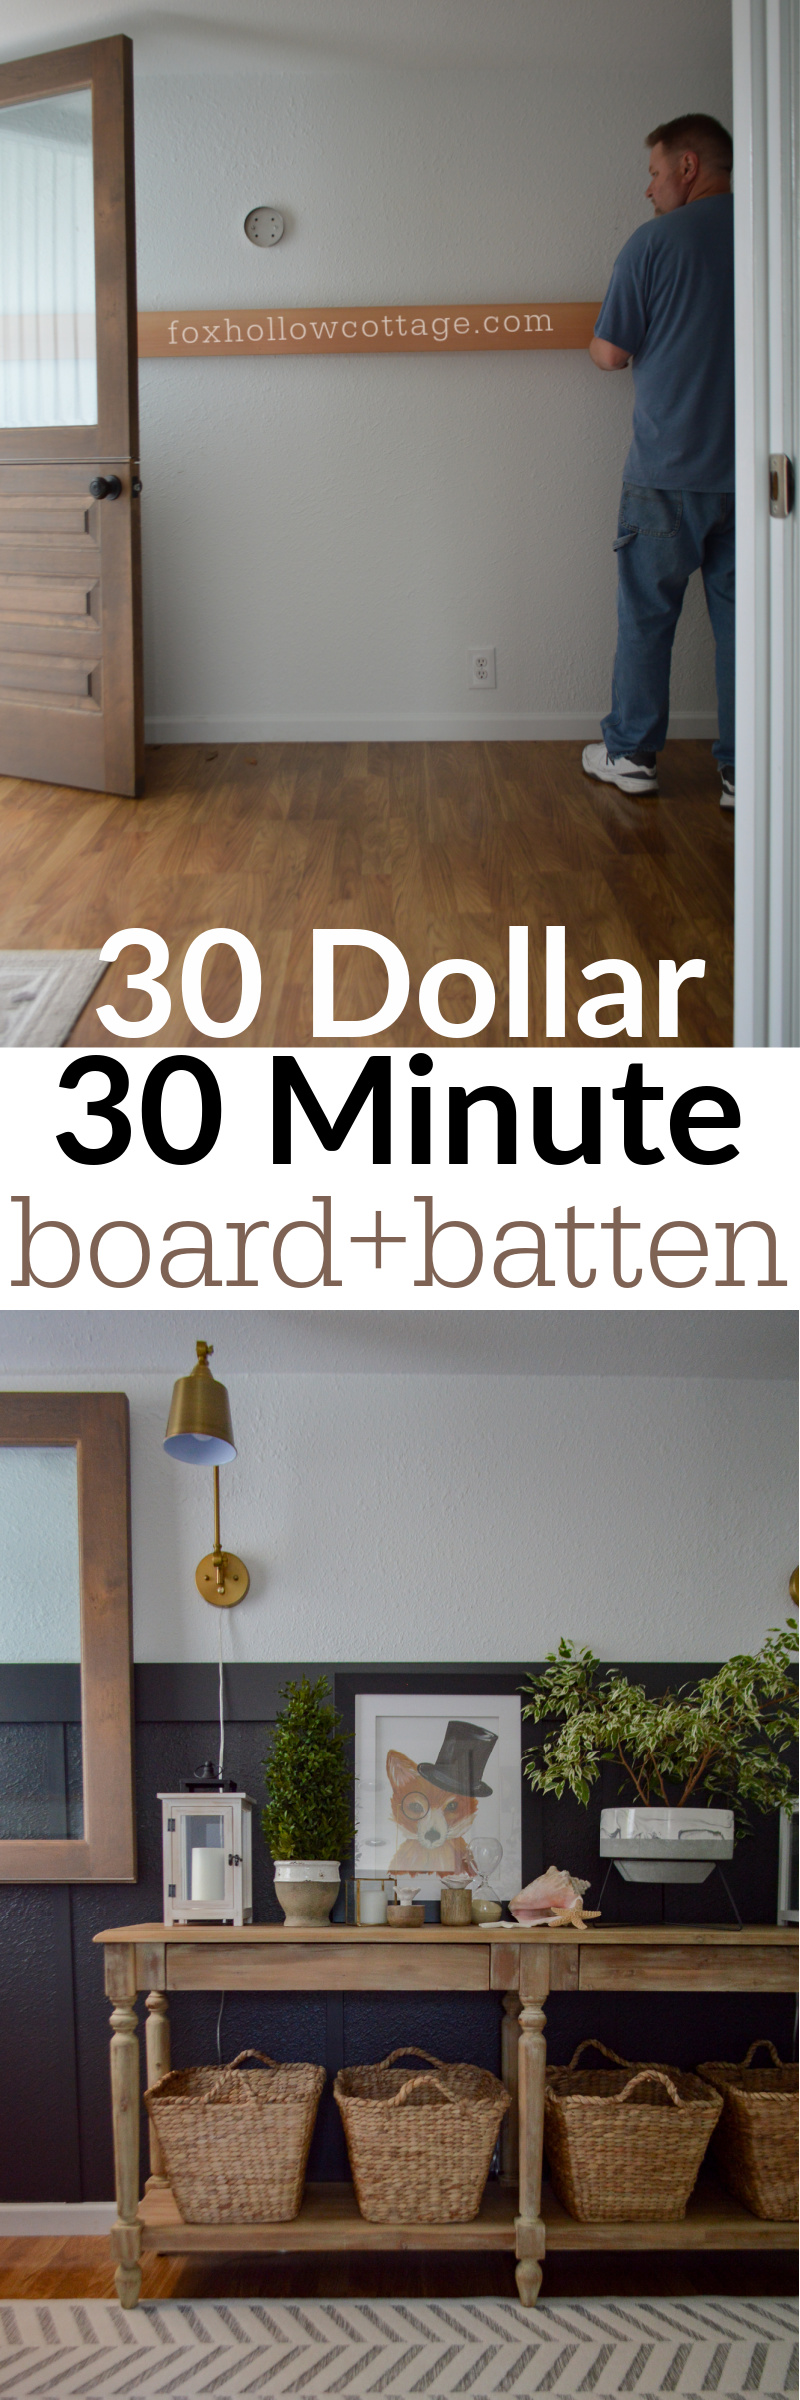 30 dollar 30 minute DIY board and batten wall treatment